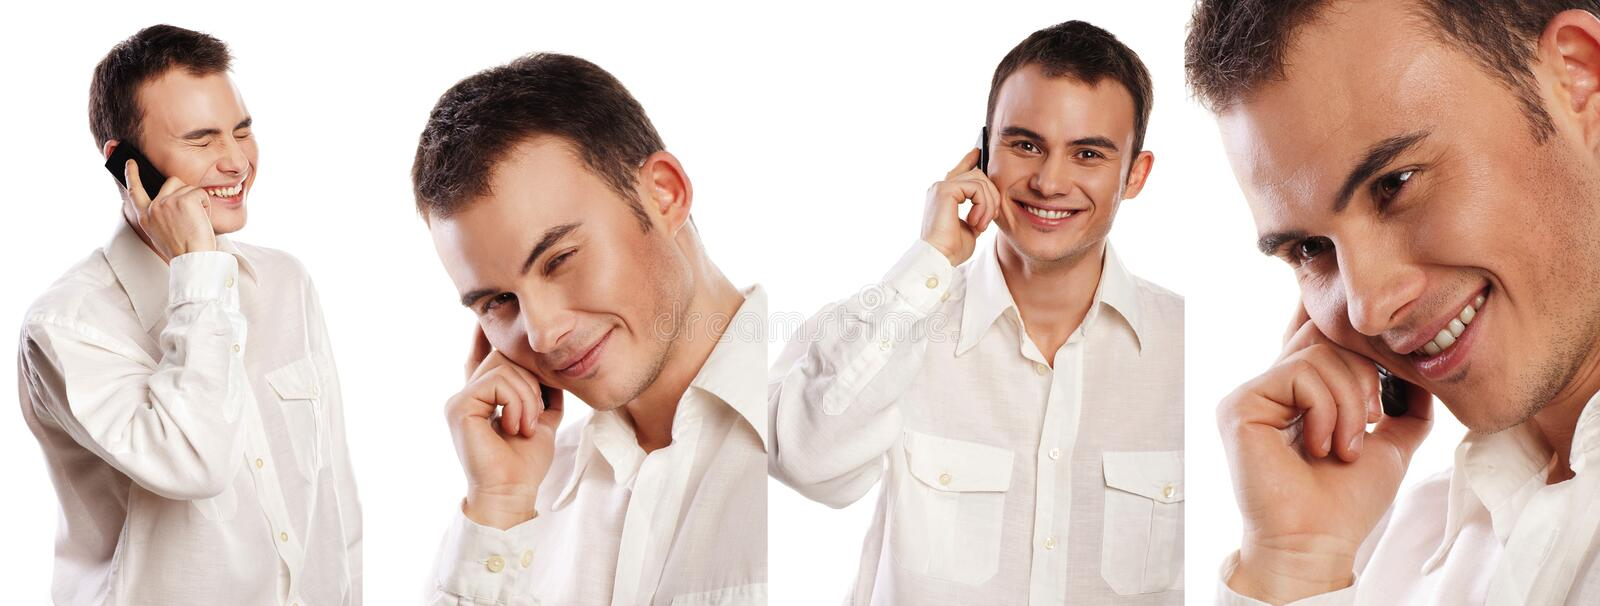 Collage of portraits business man with phone isolated on white background stock photos